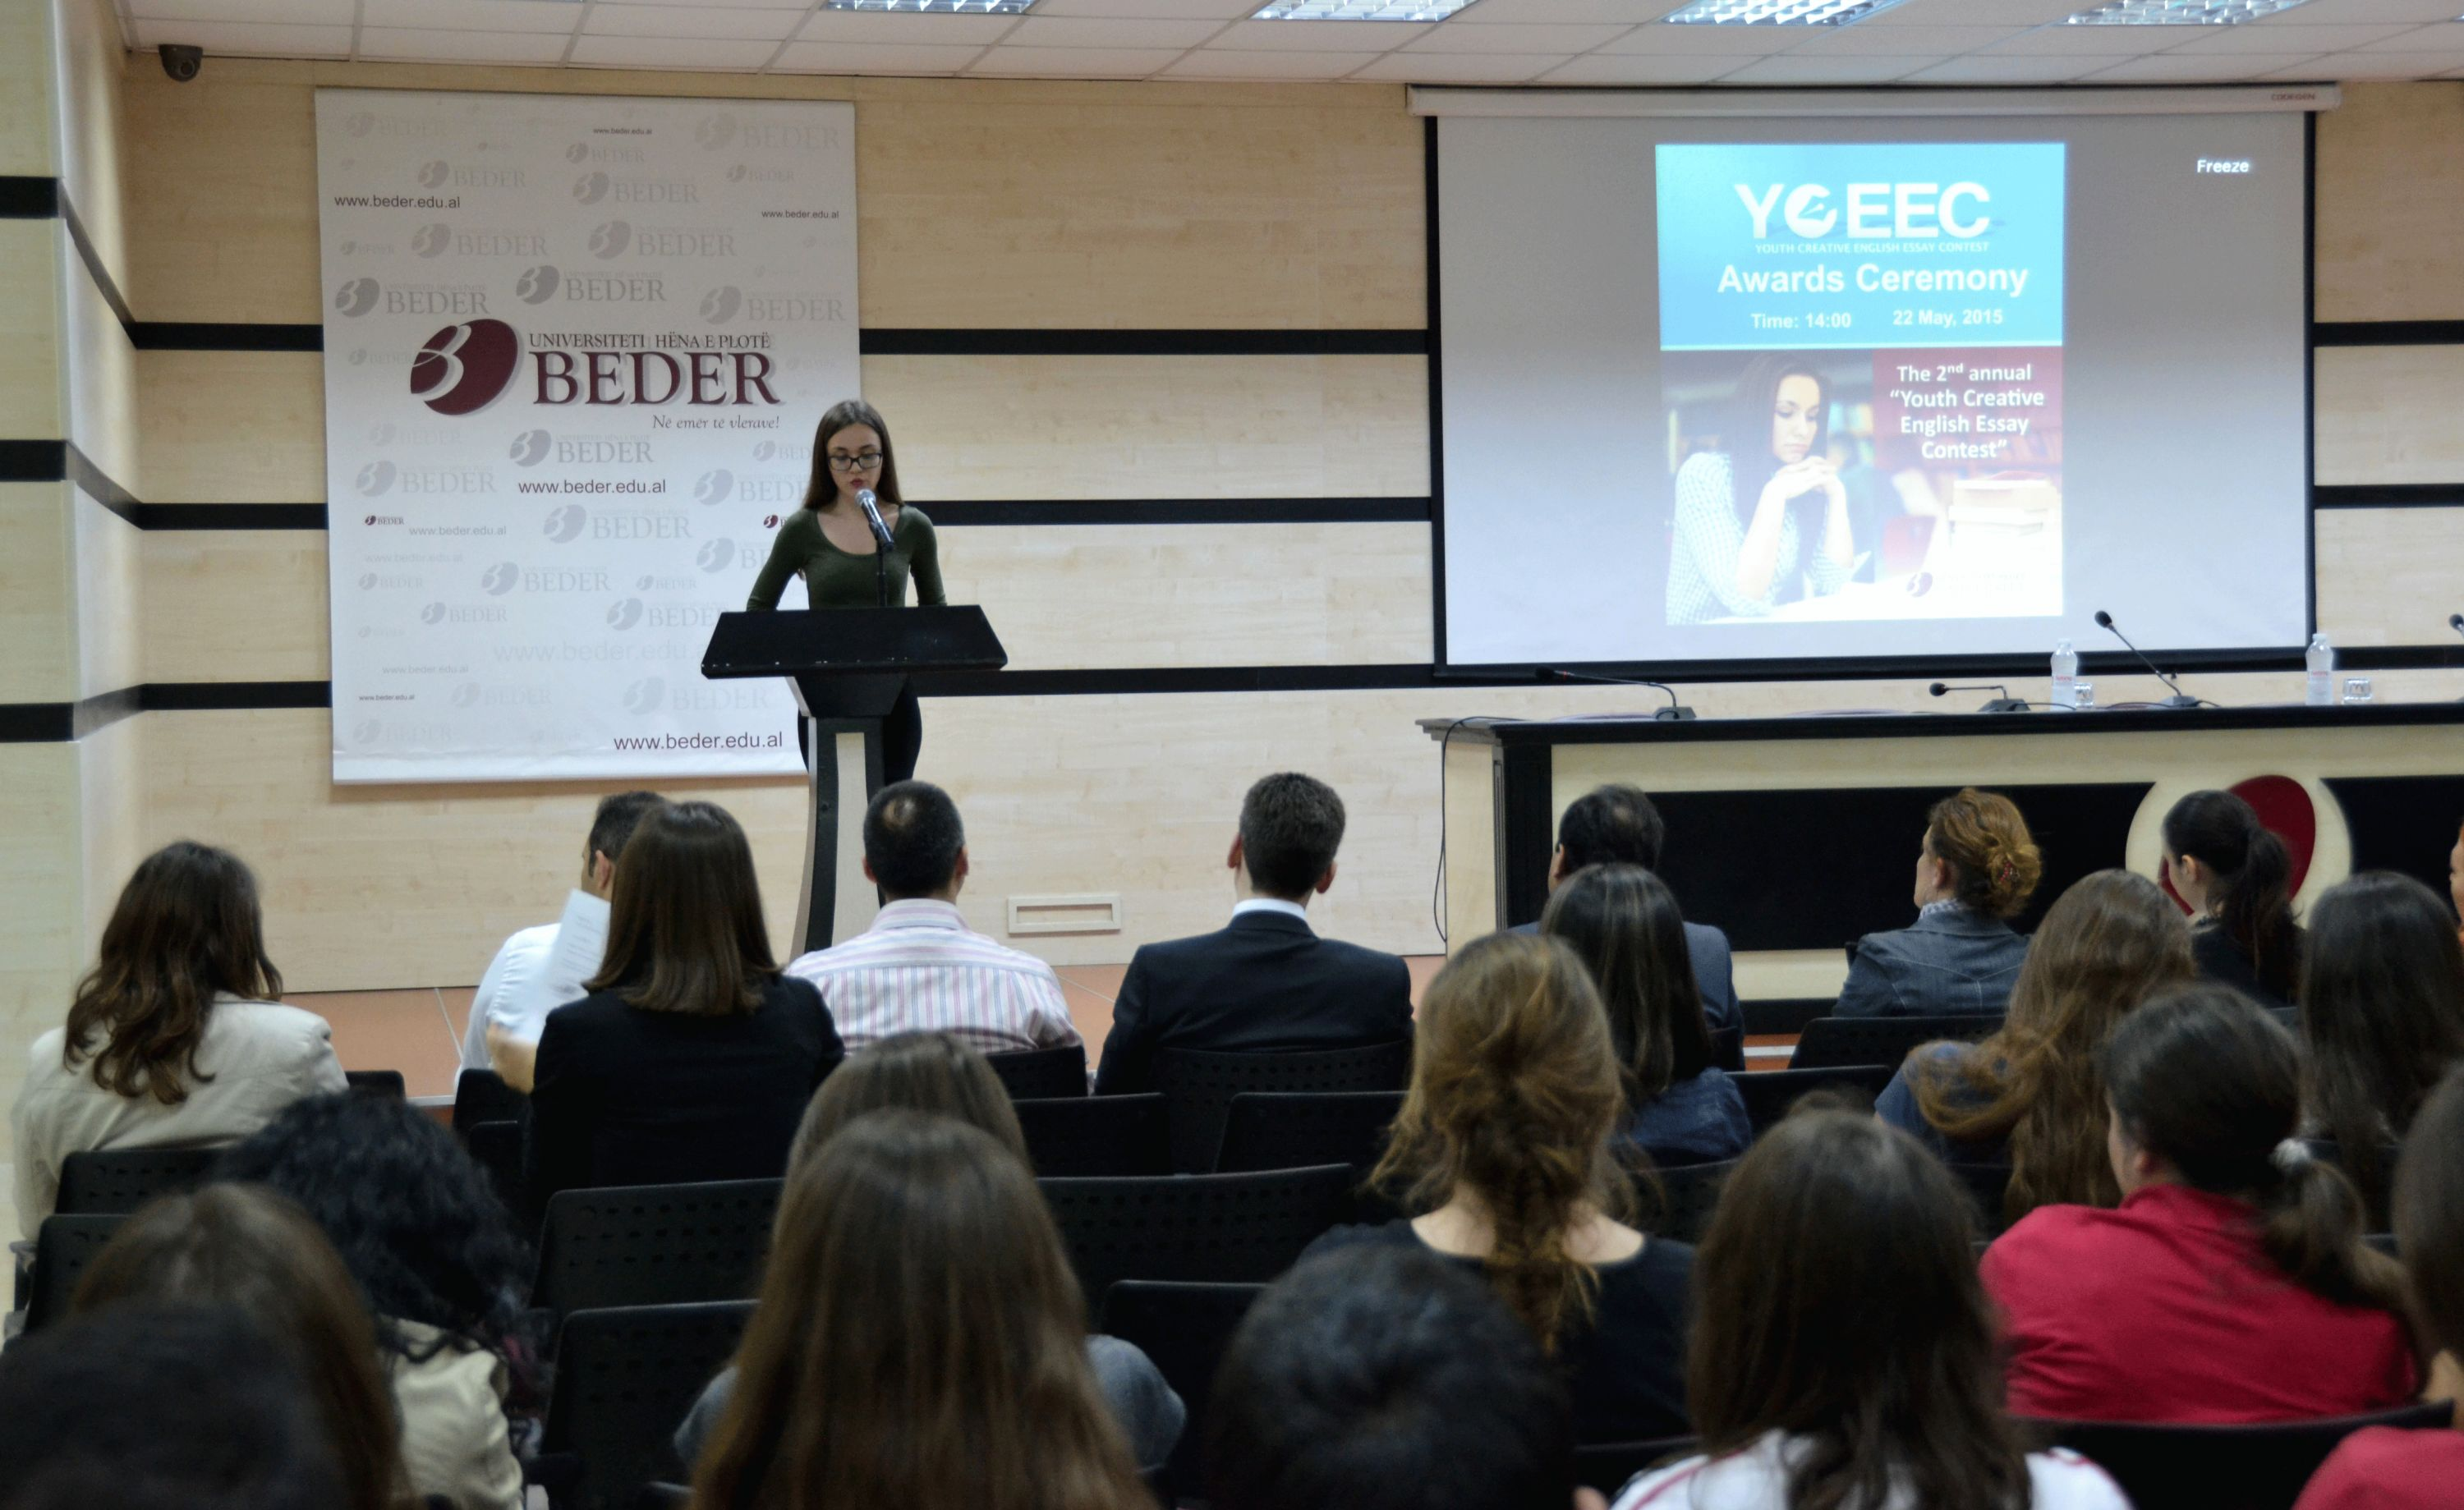 shkolla e lart euml h euml na e plot euml bed euml r get announced winners of beder university hosted the awards ceremony for the contest youth creative english essay contest the contest is organized for the 2nd time in cooperation